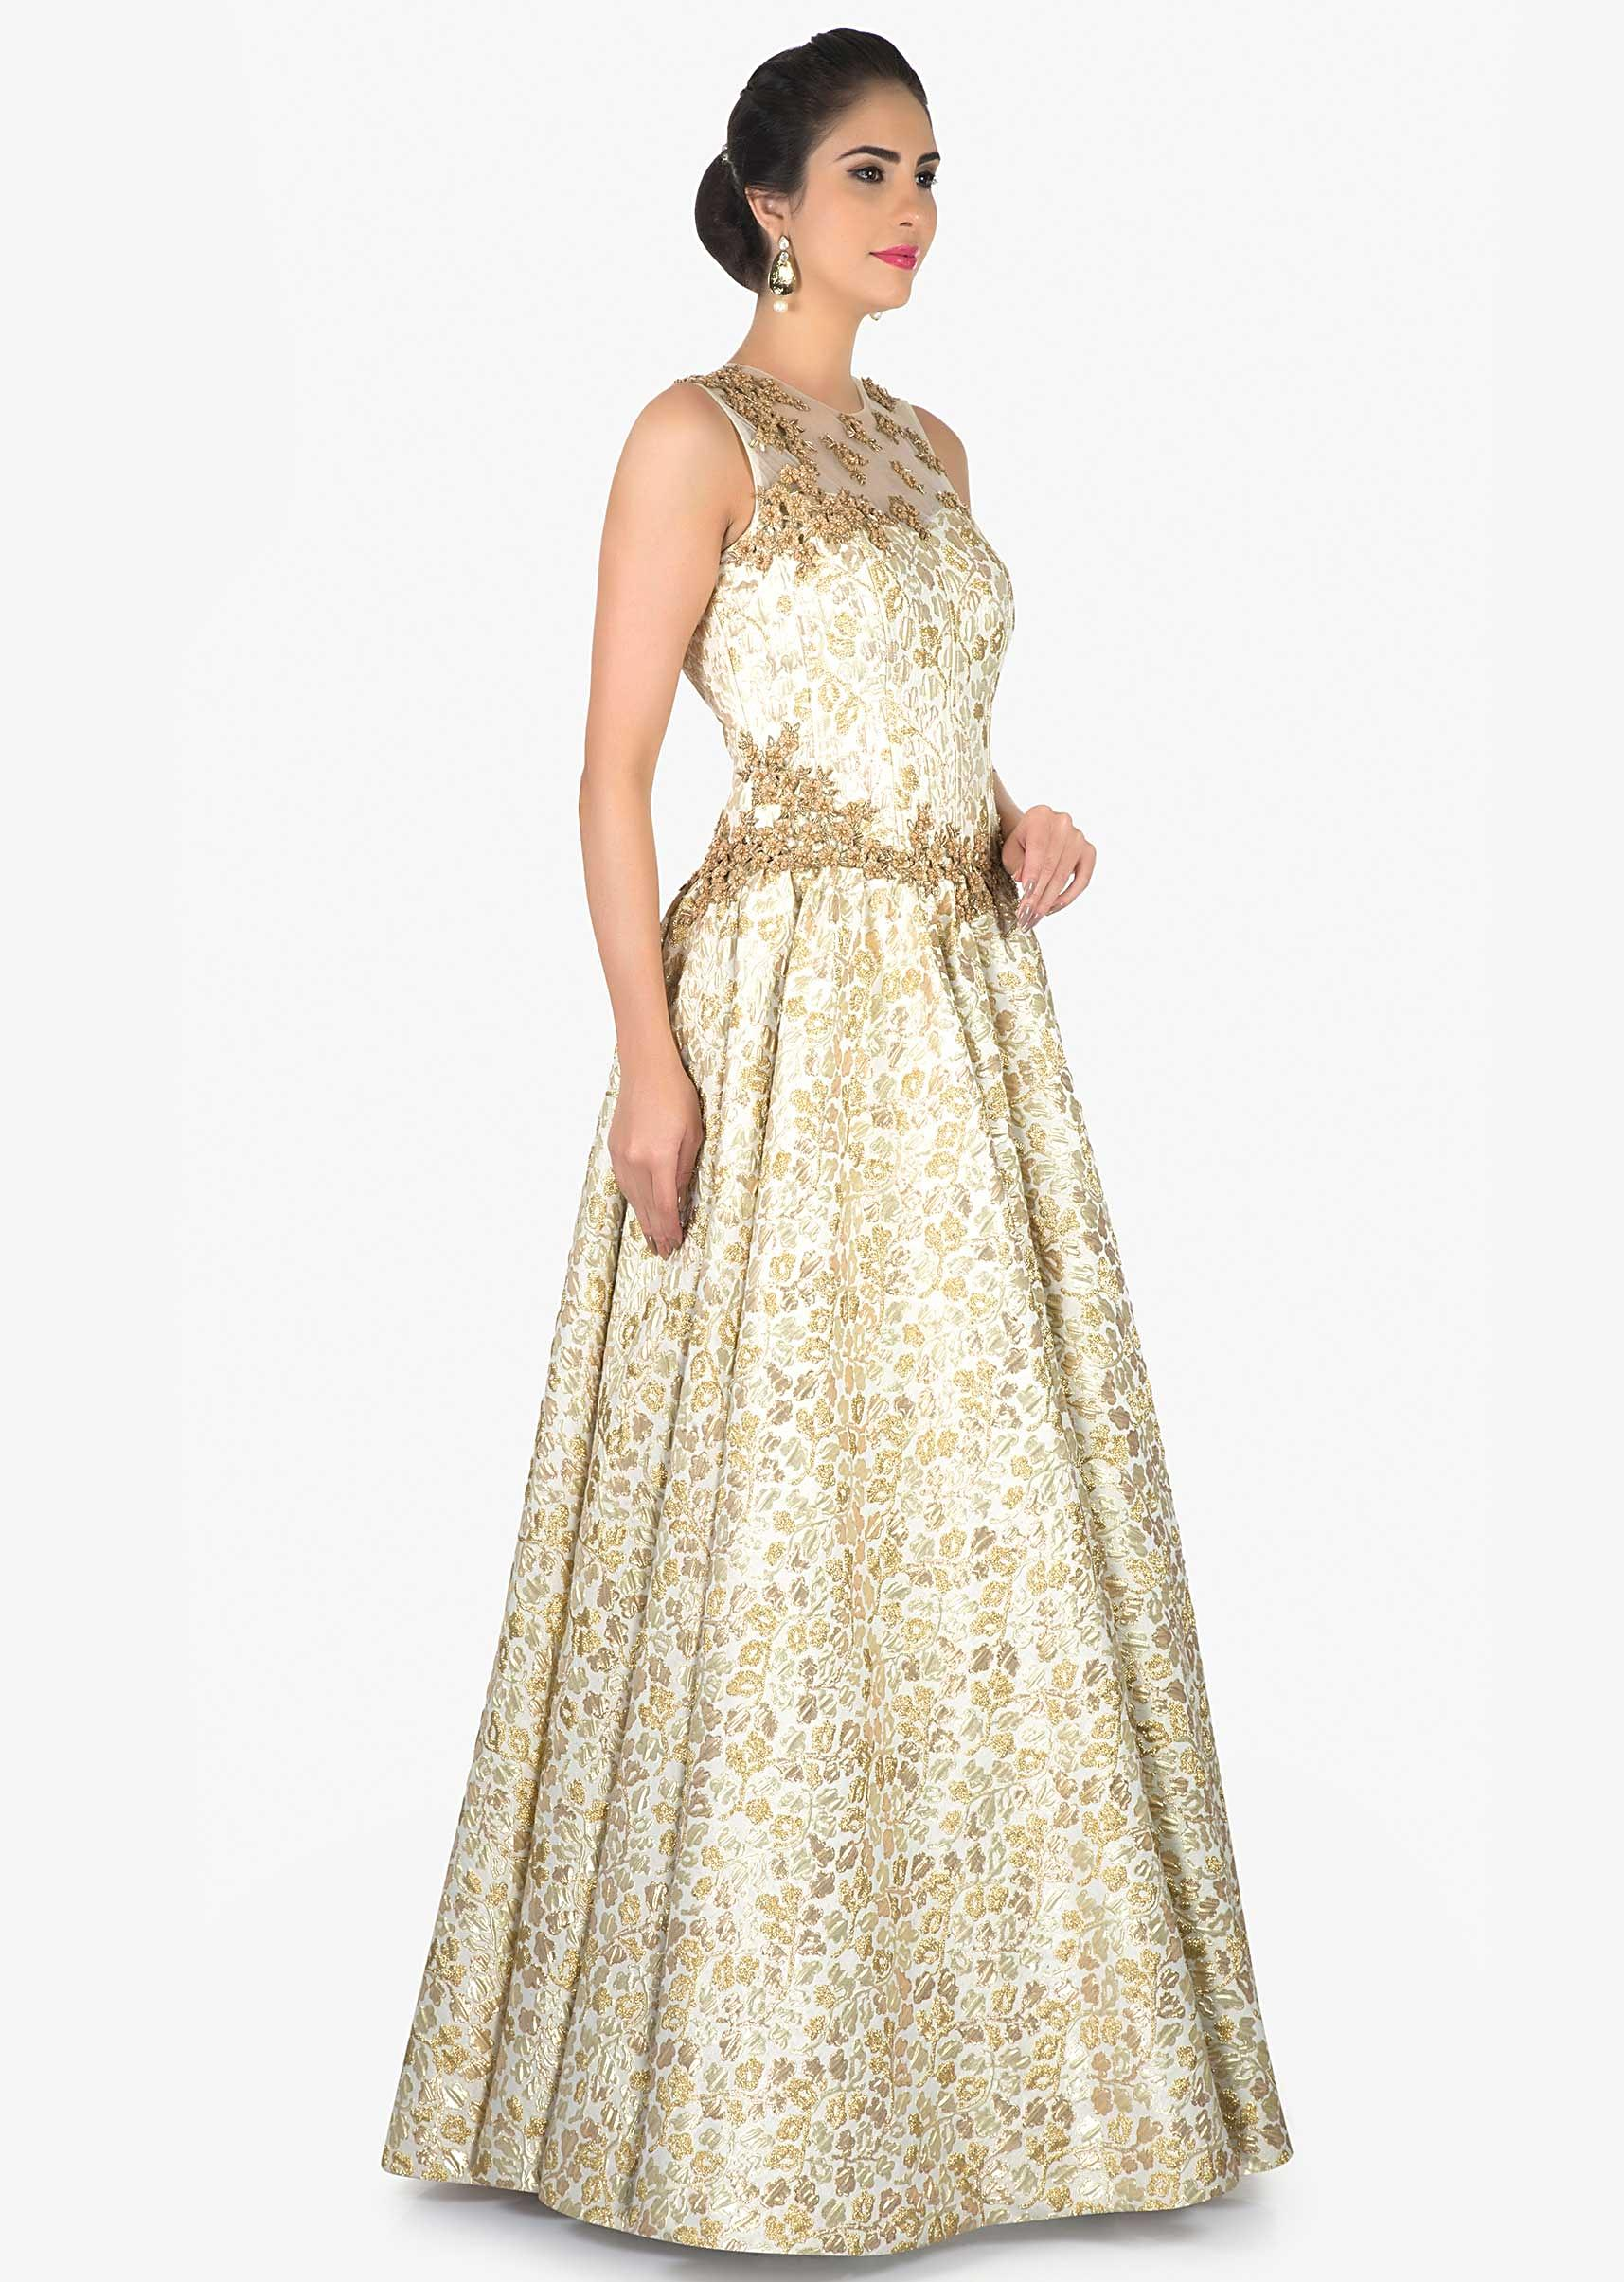 Image result for CREAM BROCADE GOWN